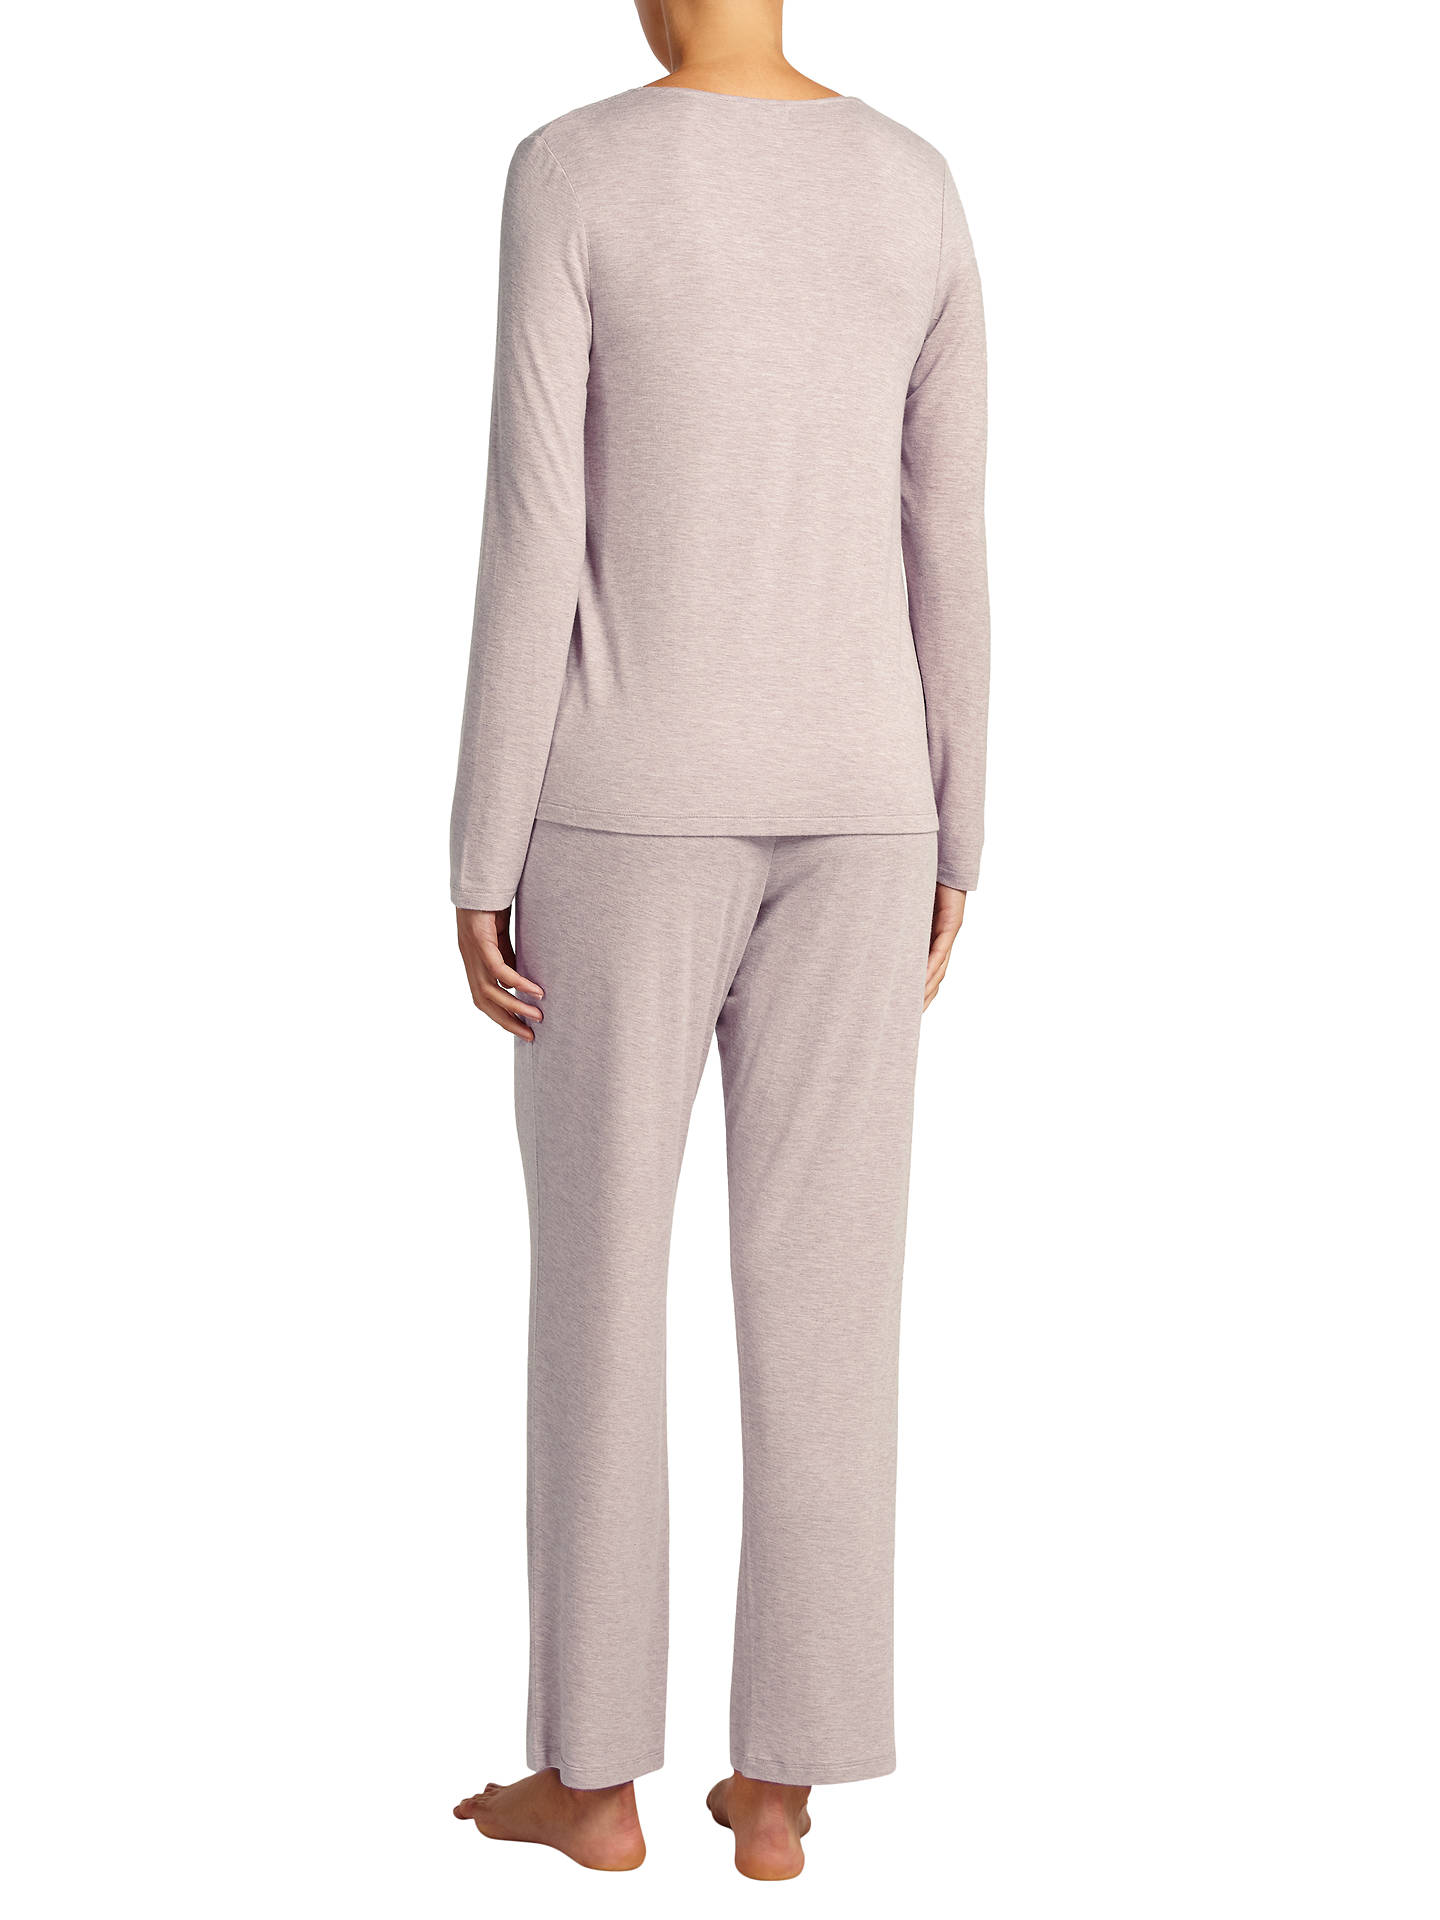 Buy John Lewis & Partners Alicia Jersey Long Sleeve Pyjama Top, Mocha, 10 Online at johnlewis.com